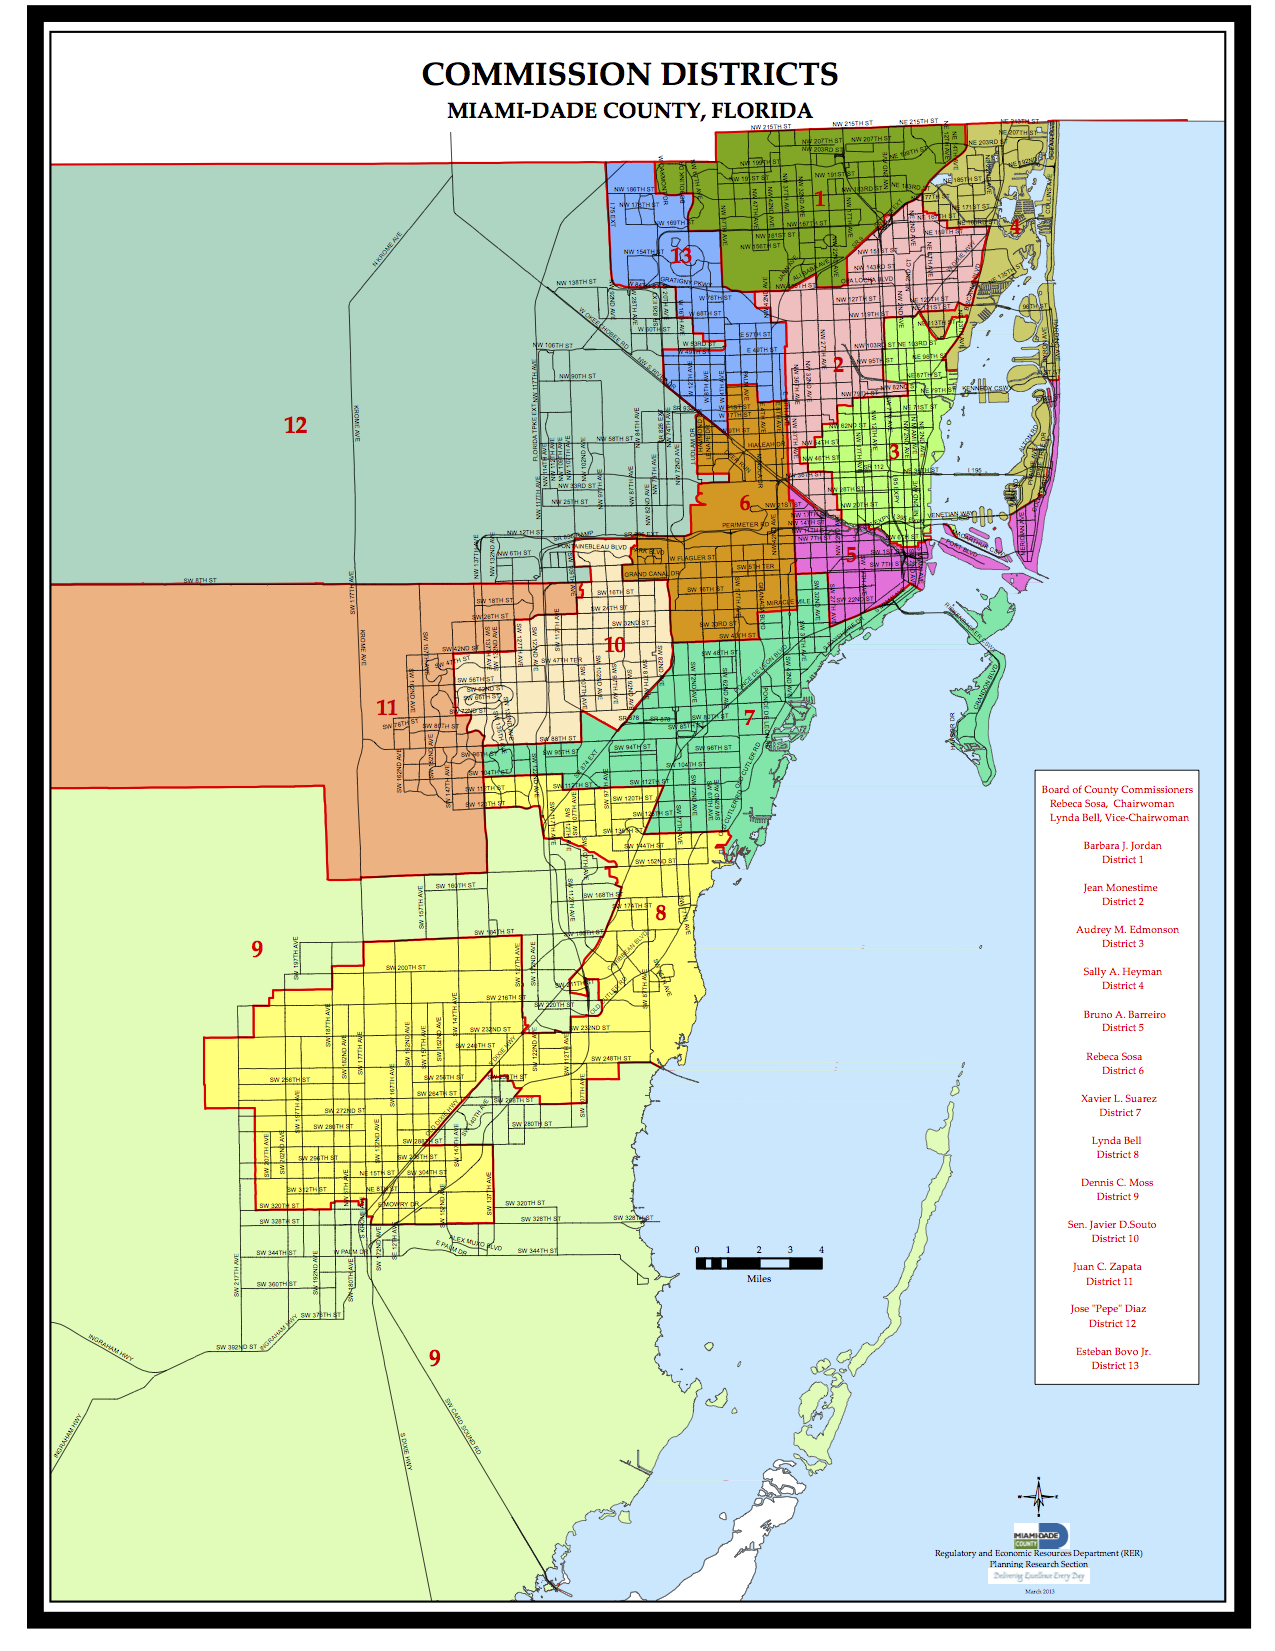 miami dade flood zone map Map Of Miami Dade County Cities miami dade flood zone map